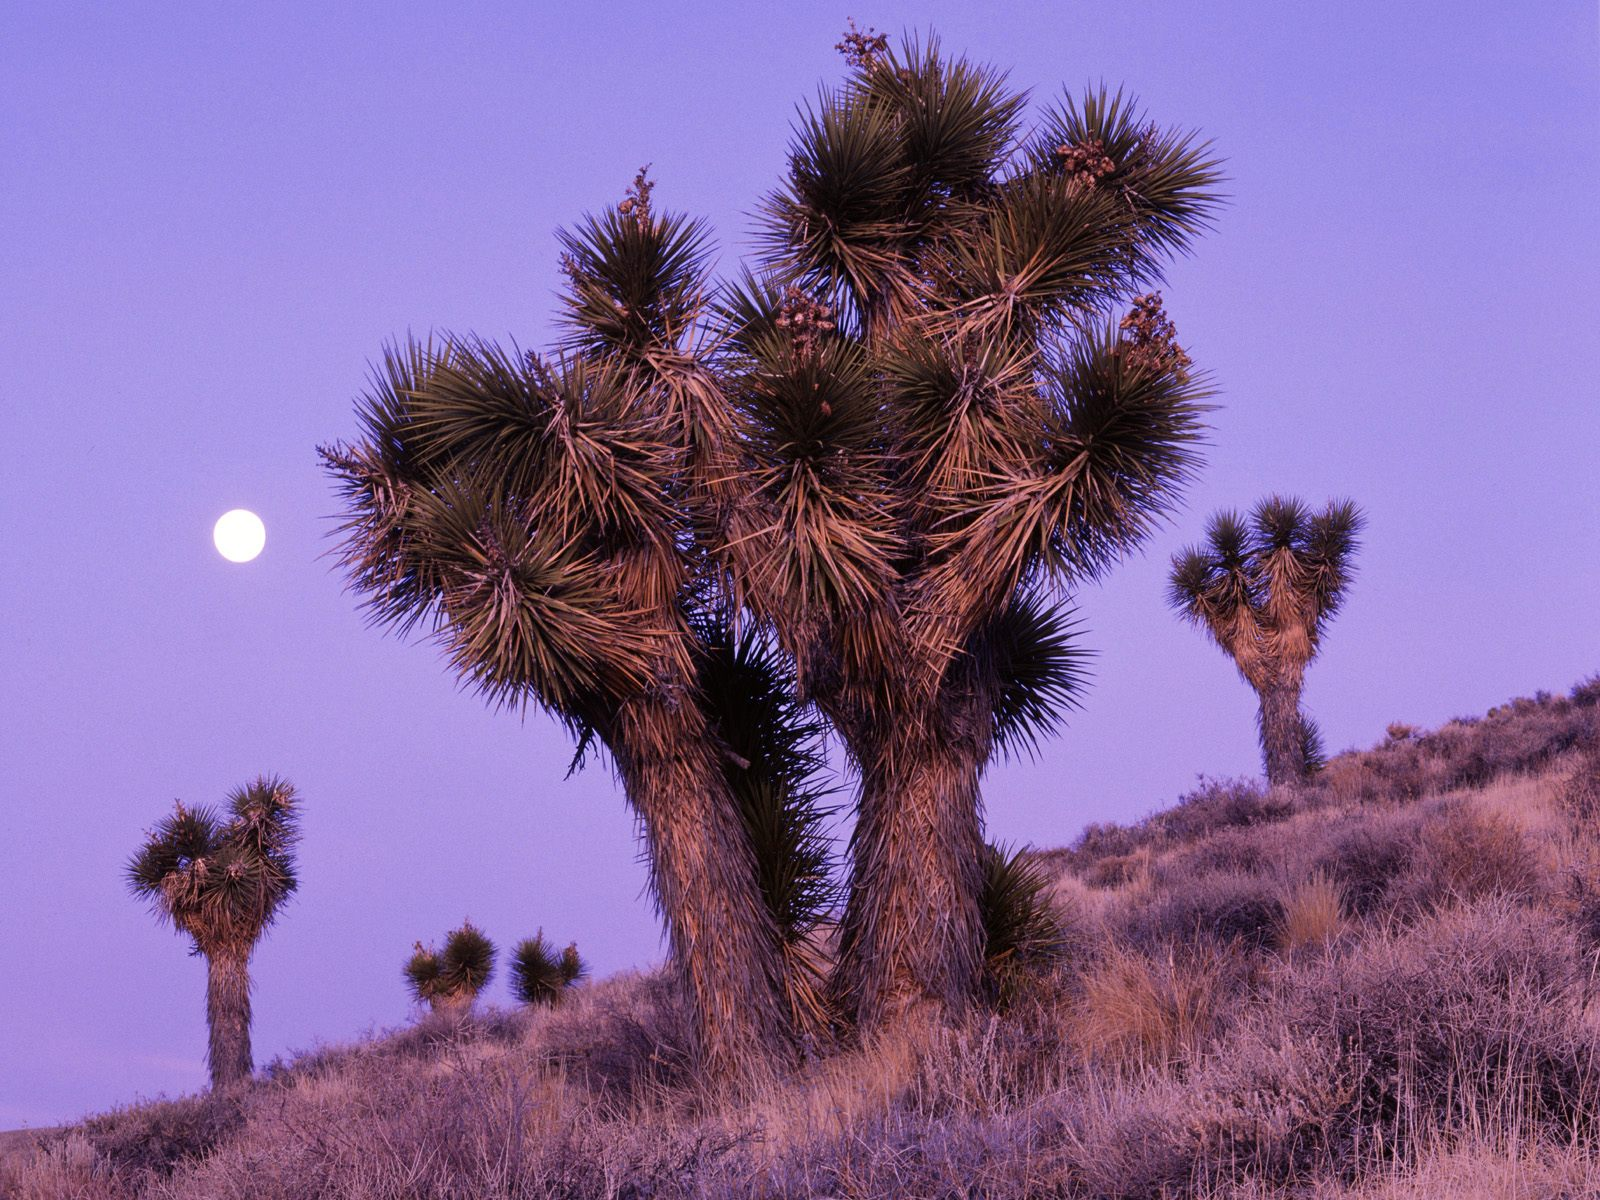 http://4.bp.blogspot.com/-n40fRNEN8tk/ULoT8_rBLBI/AAAAAAAAIq4/WcOamYEVmwc/s1600/Moonrise+Over+Joshua+Trees,+Death+Valley+National+Park,+Cali.jpg